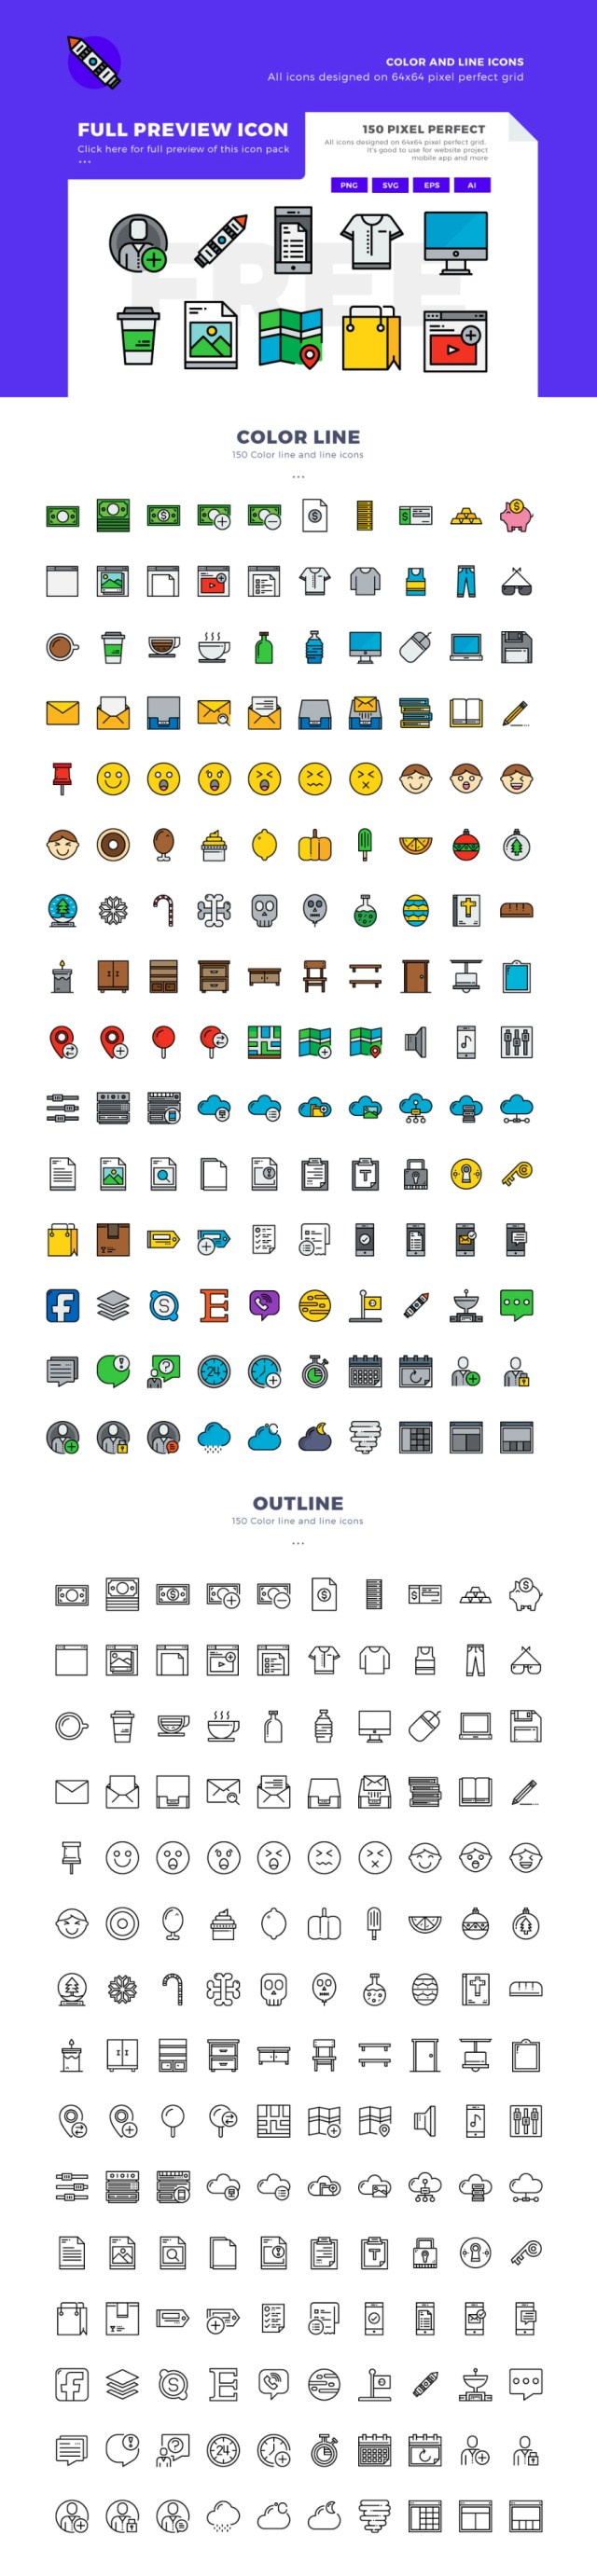 150 Mix Color-Line Icon Samples